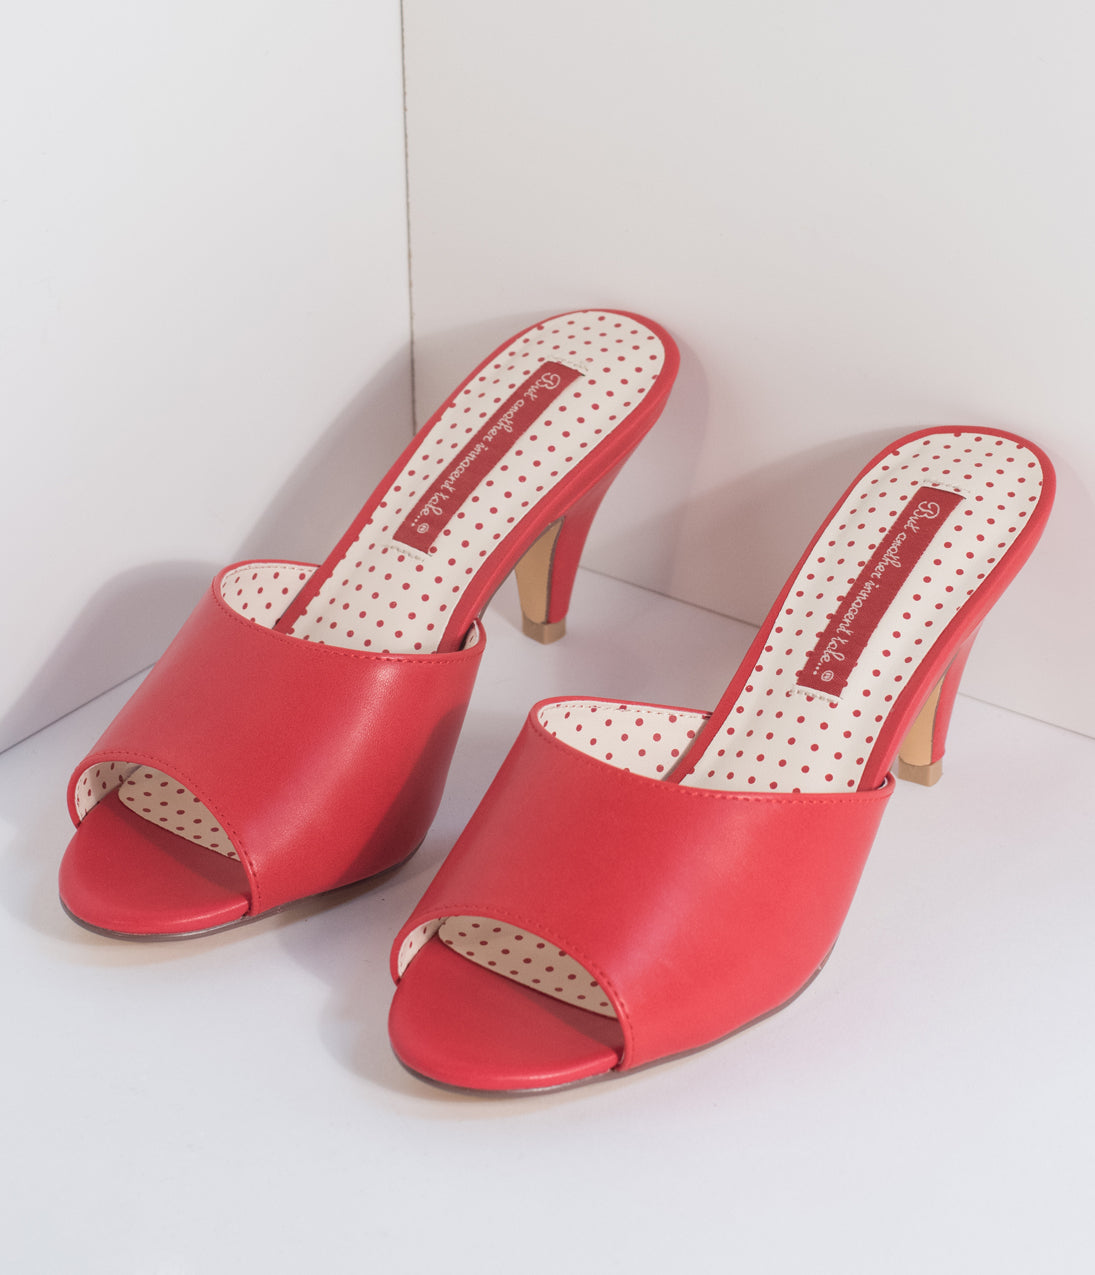 1950s Style Shoes B.a.i.t. 1950S Red Leatherette Peep Toe Slipper Hindy Heels $70.00 AT vintagedancer.com